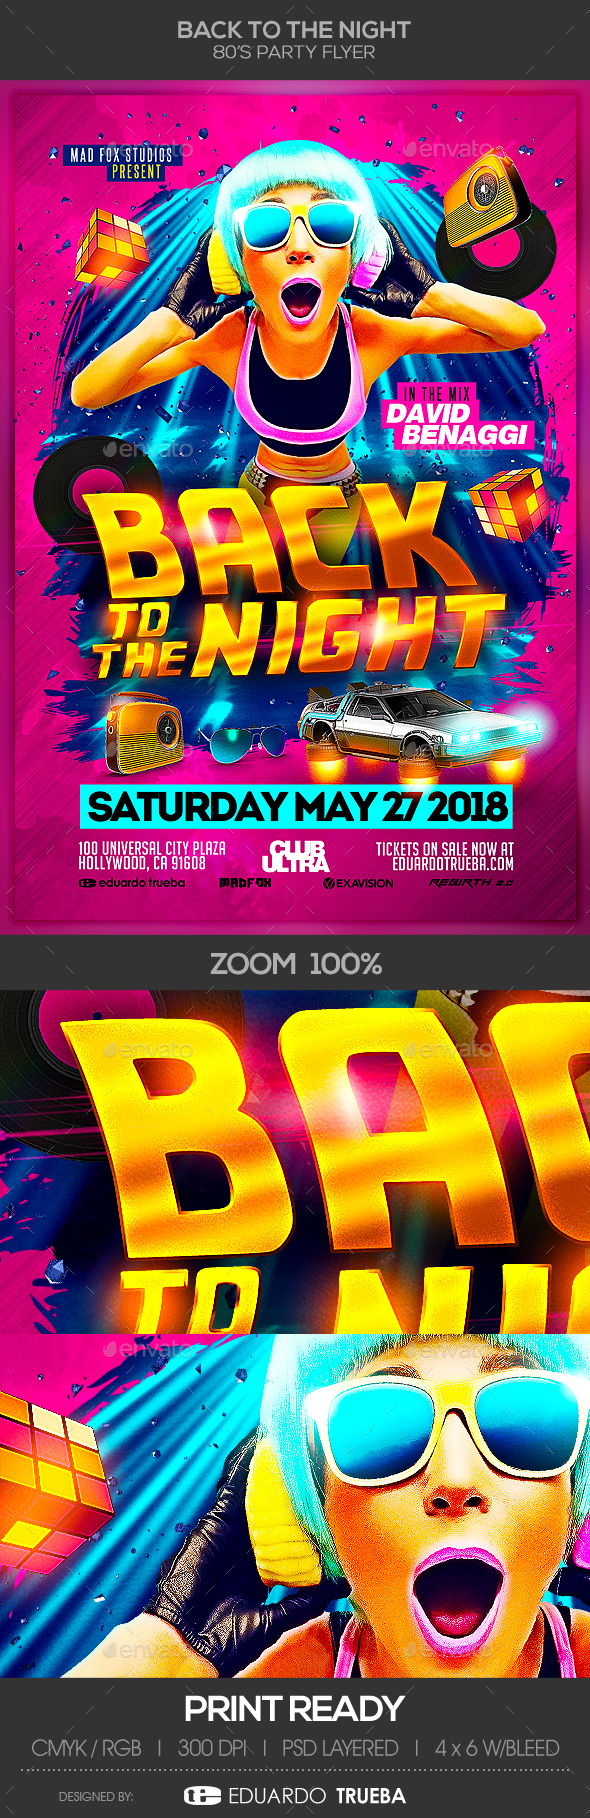 Back to the Night 80's Party Flyer - Clubs & Parties Events